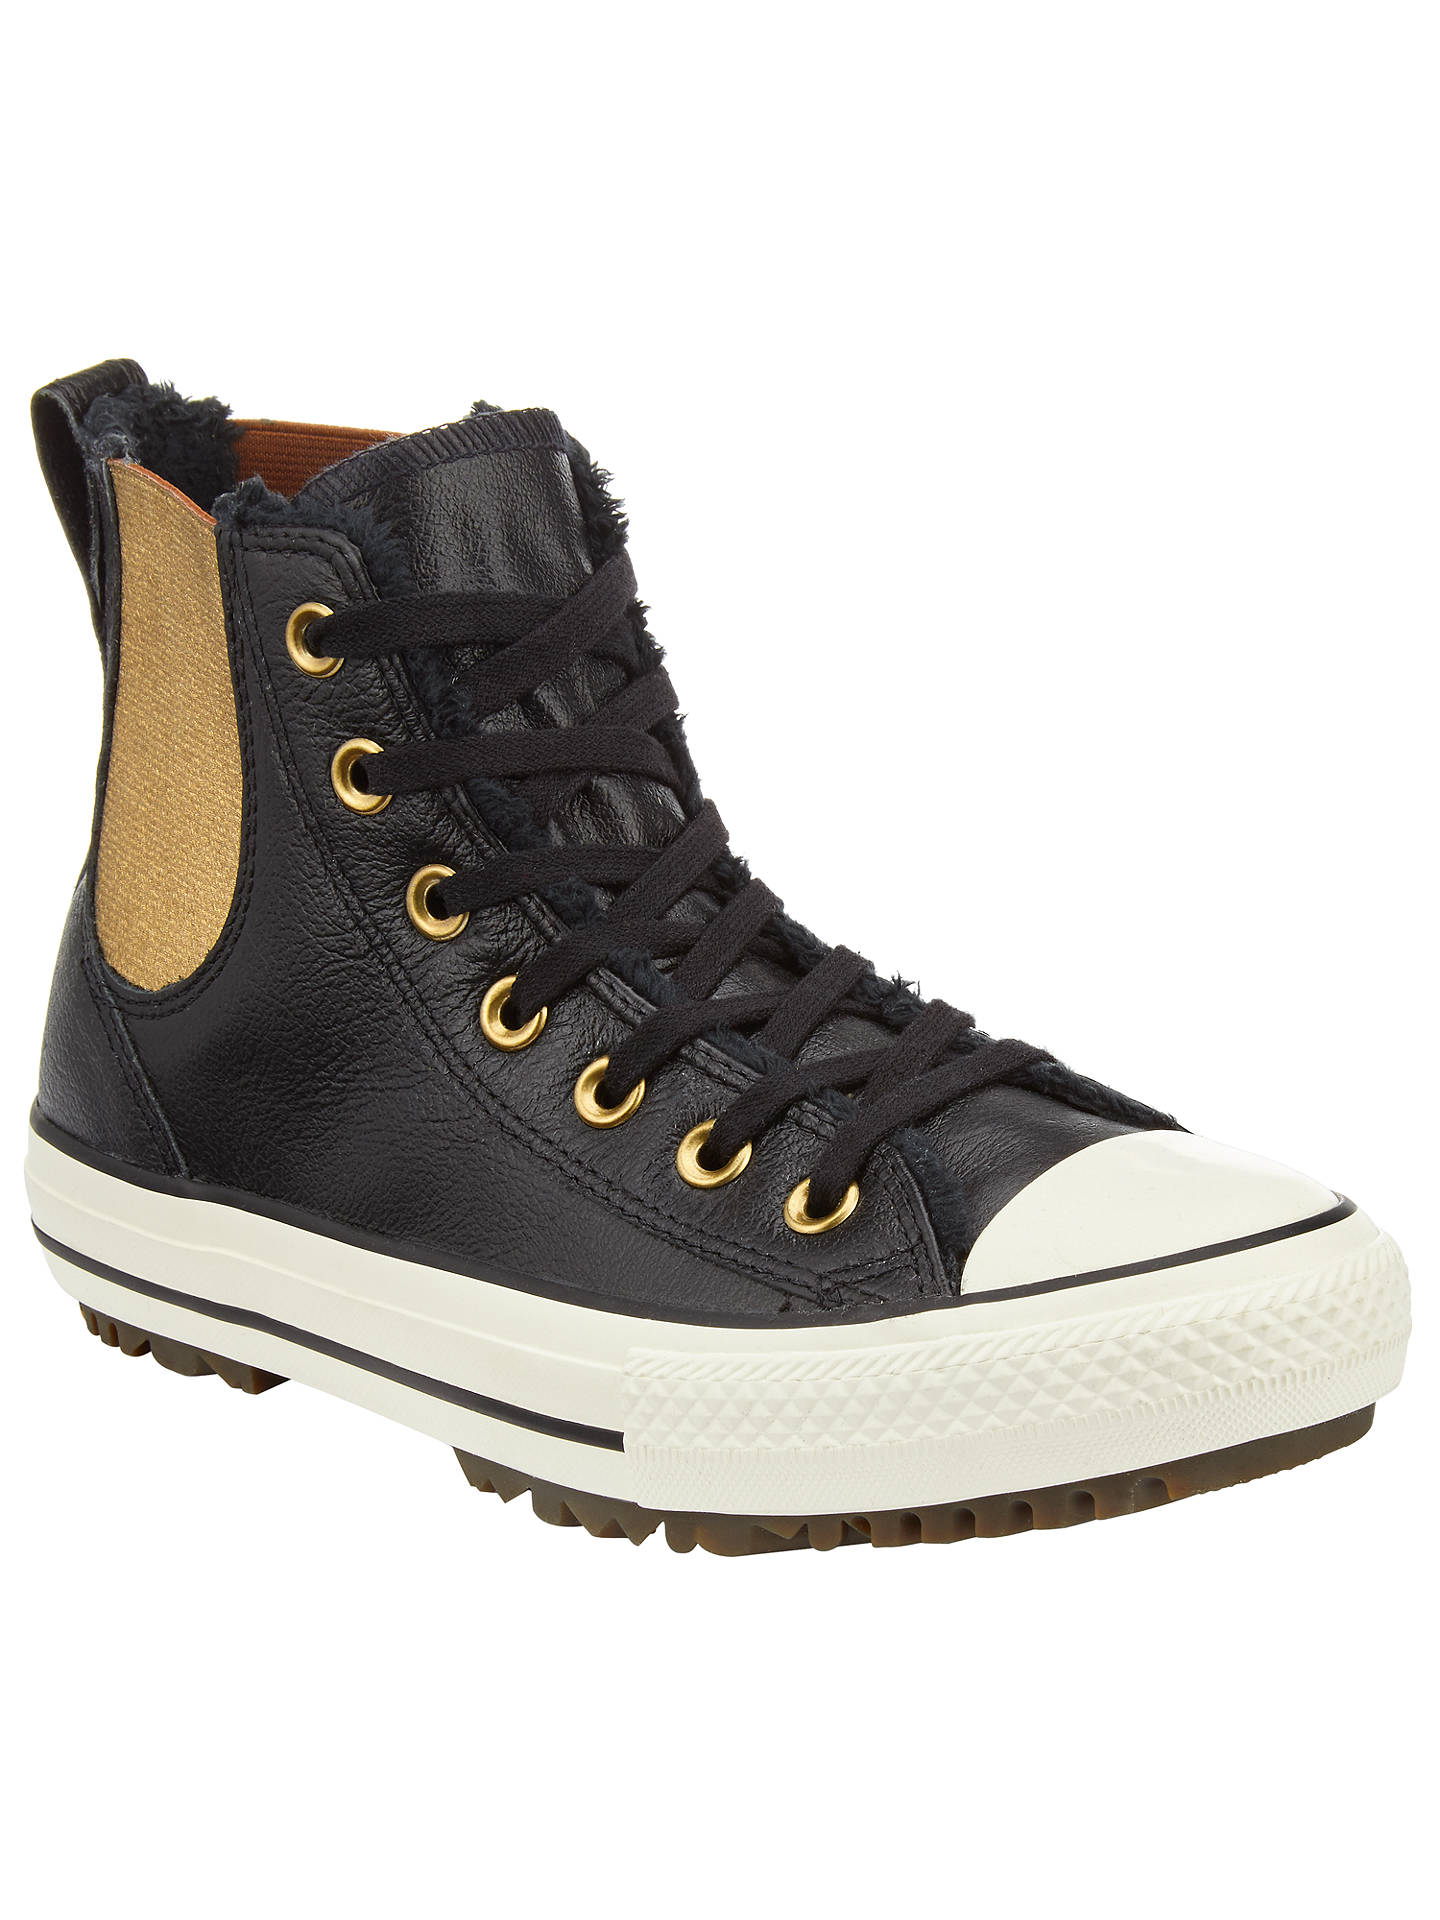 Converse Chuck Taylor All Star Chelsea Boot Hi Top Trainers